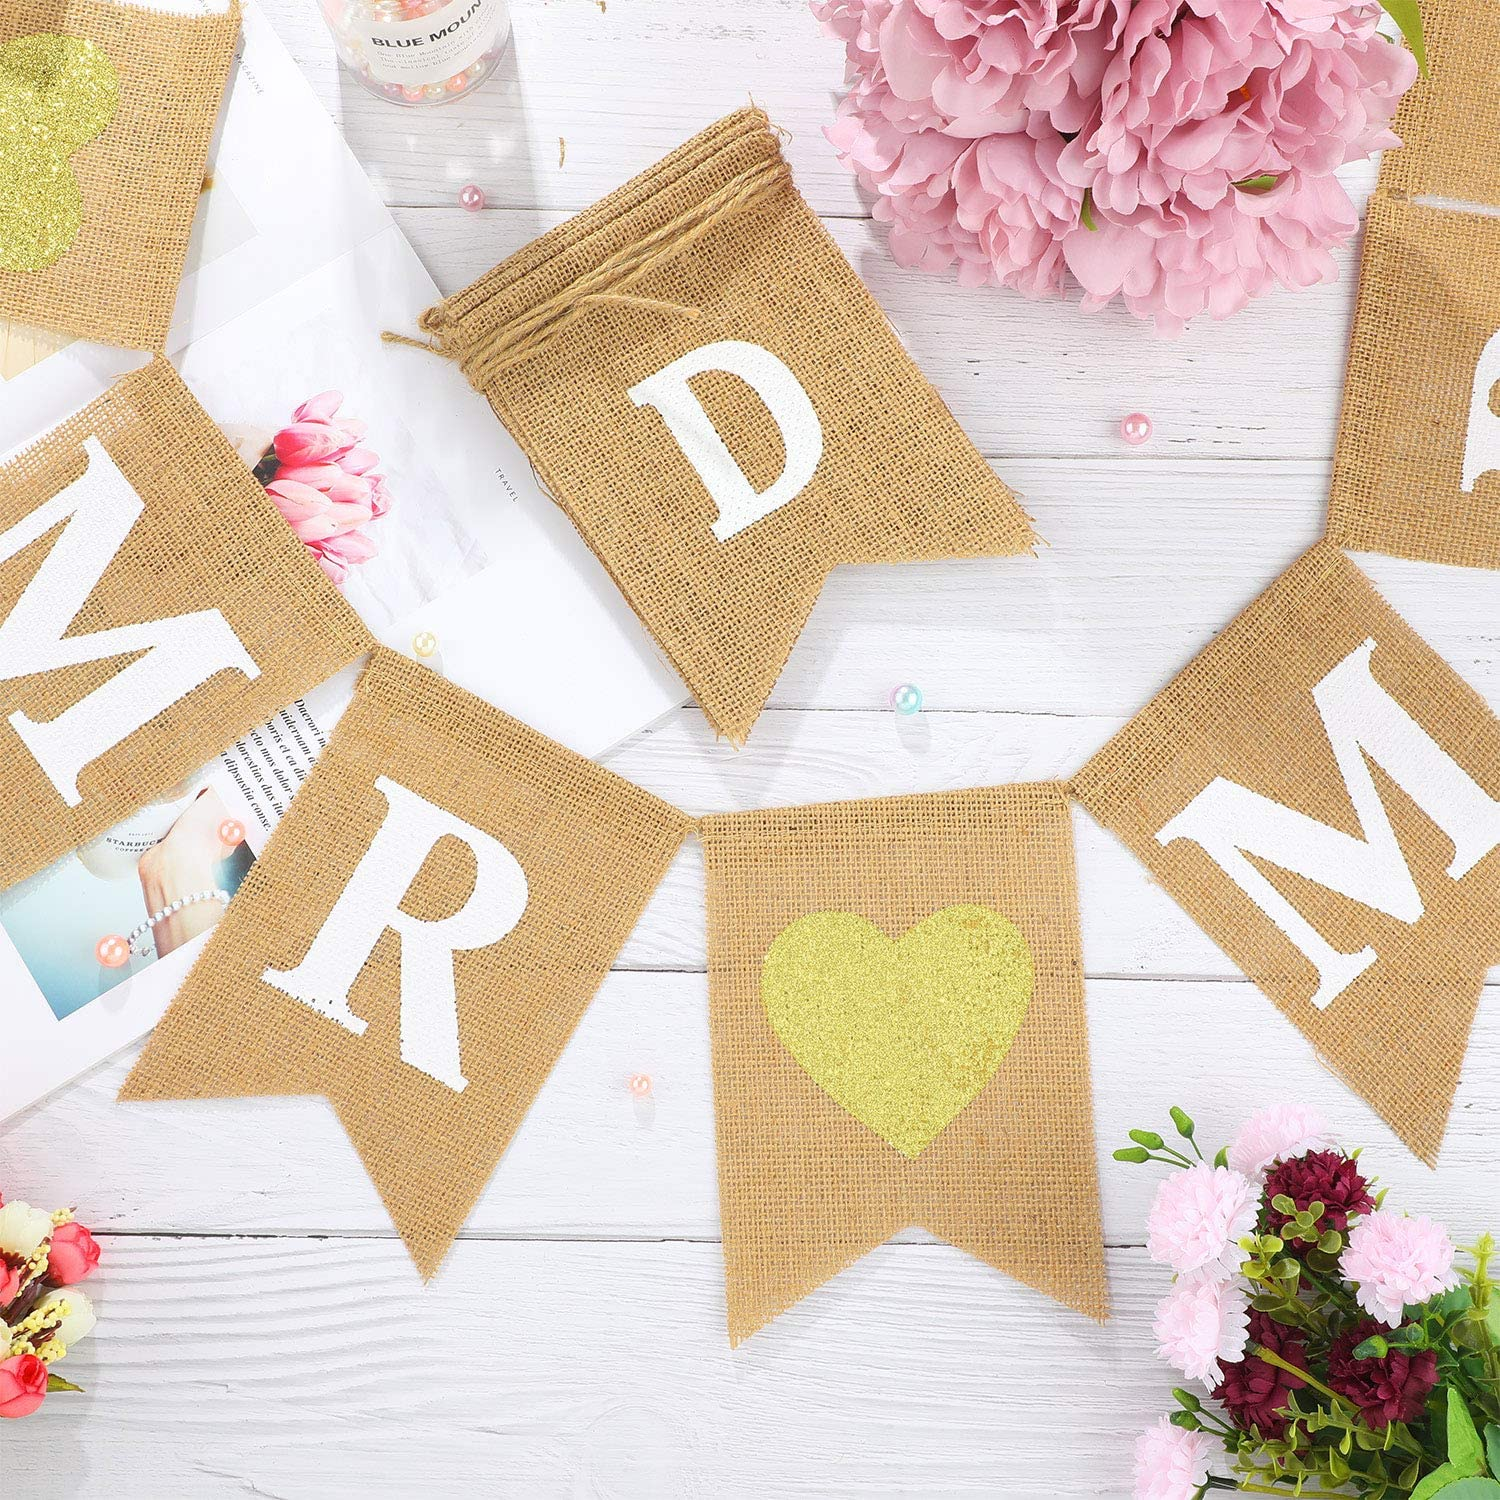 23 Pieces Mr and Mrs Banner Just Married Banner Burlap Wedding Bridal Shower  Banner Rustic Bunting Garland for Wedding Party Within Bridal Shower Banner Template